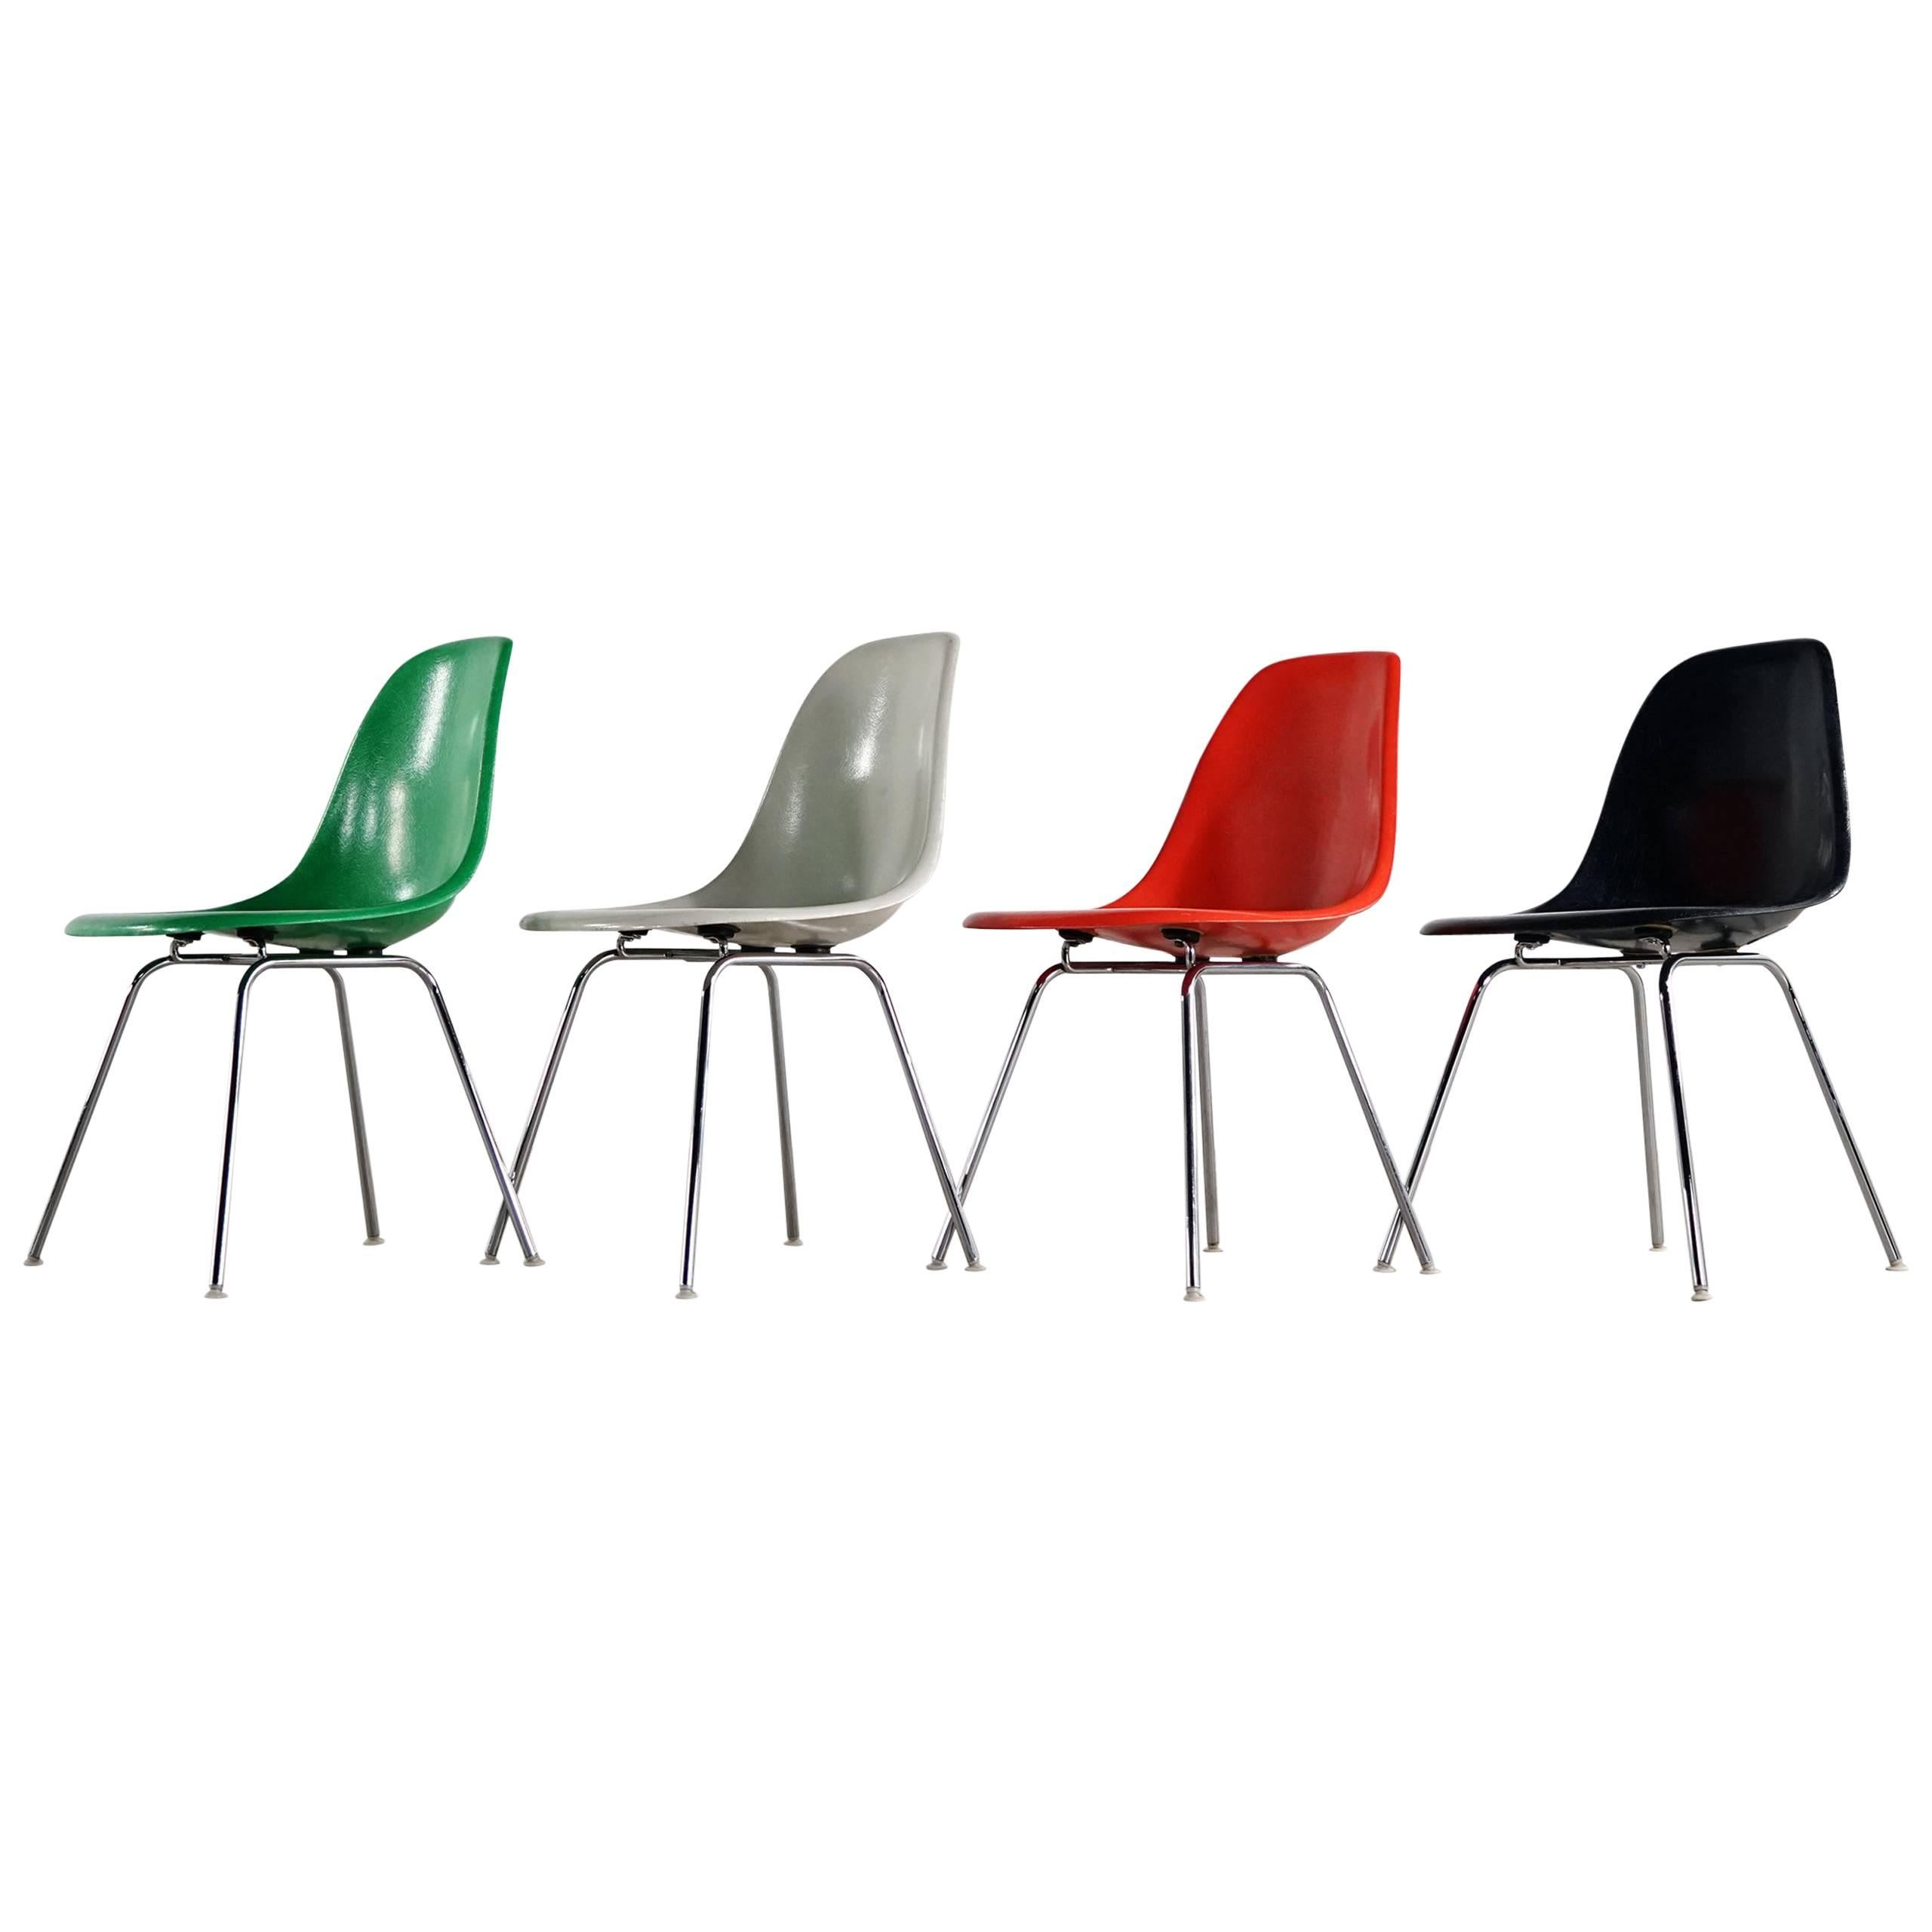 Vitra Eames Side Chair Charles Eames Rare Set Of Four Siede Chairs Fehlbaum Prod Vitra Etc